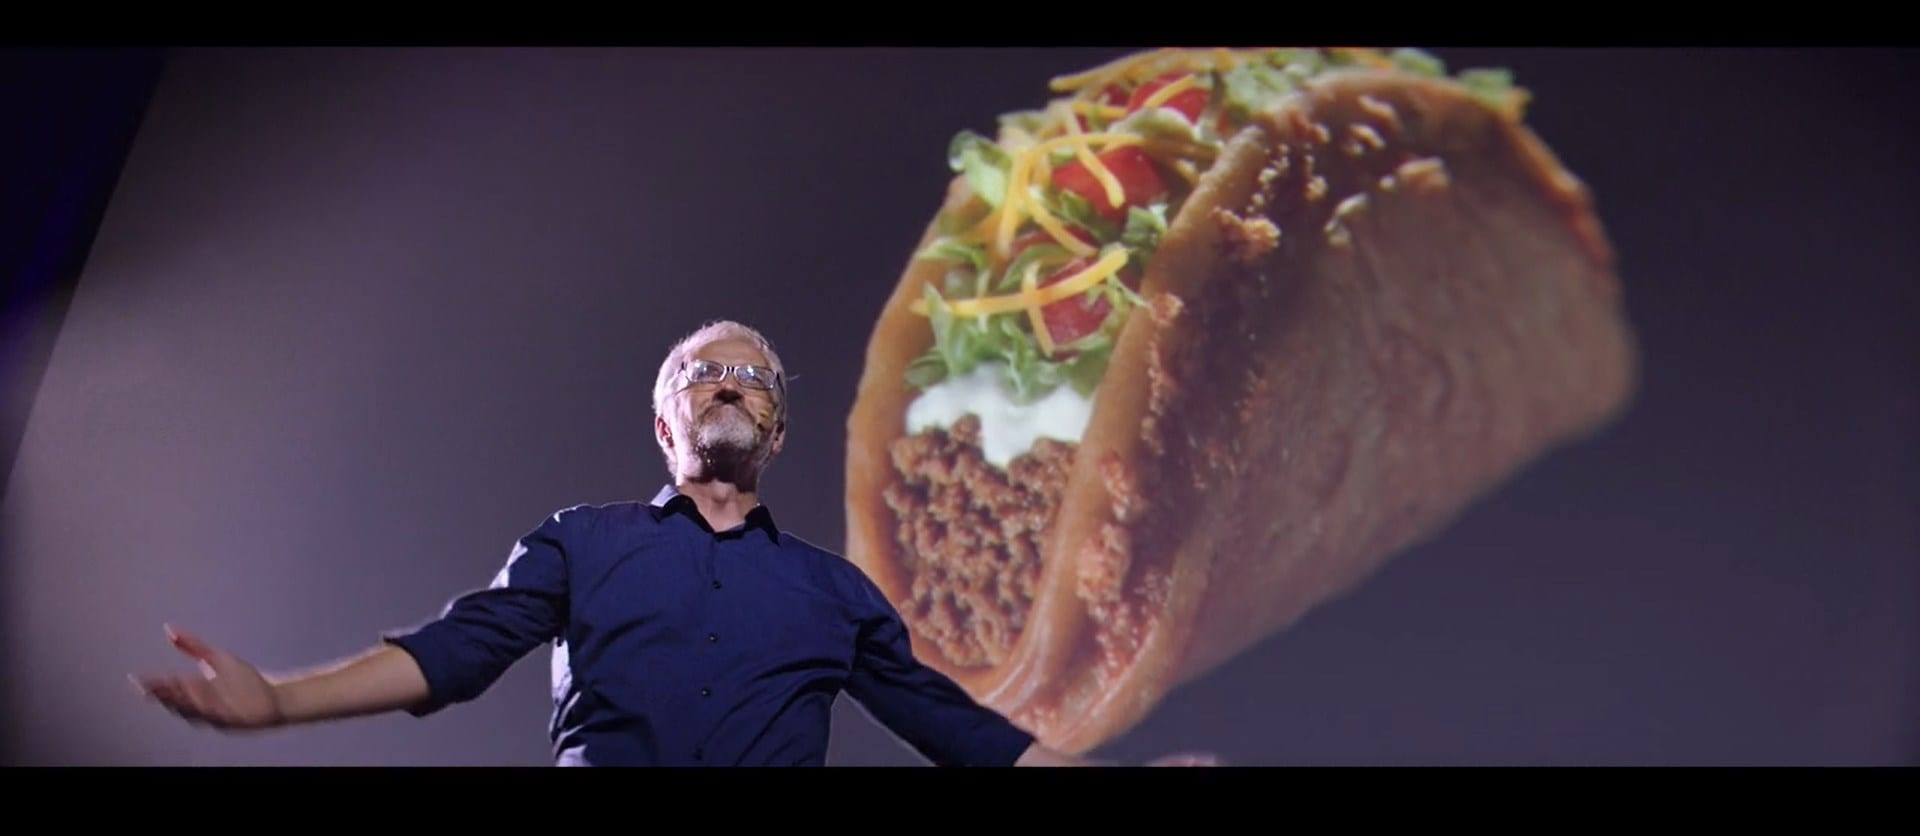 taco bell commercial 2021